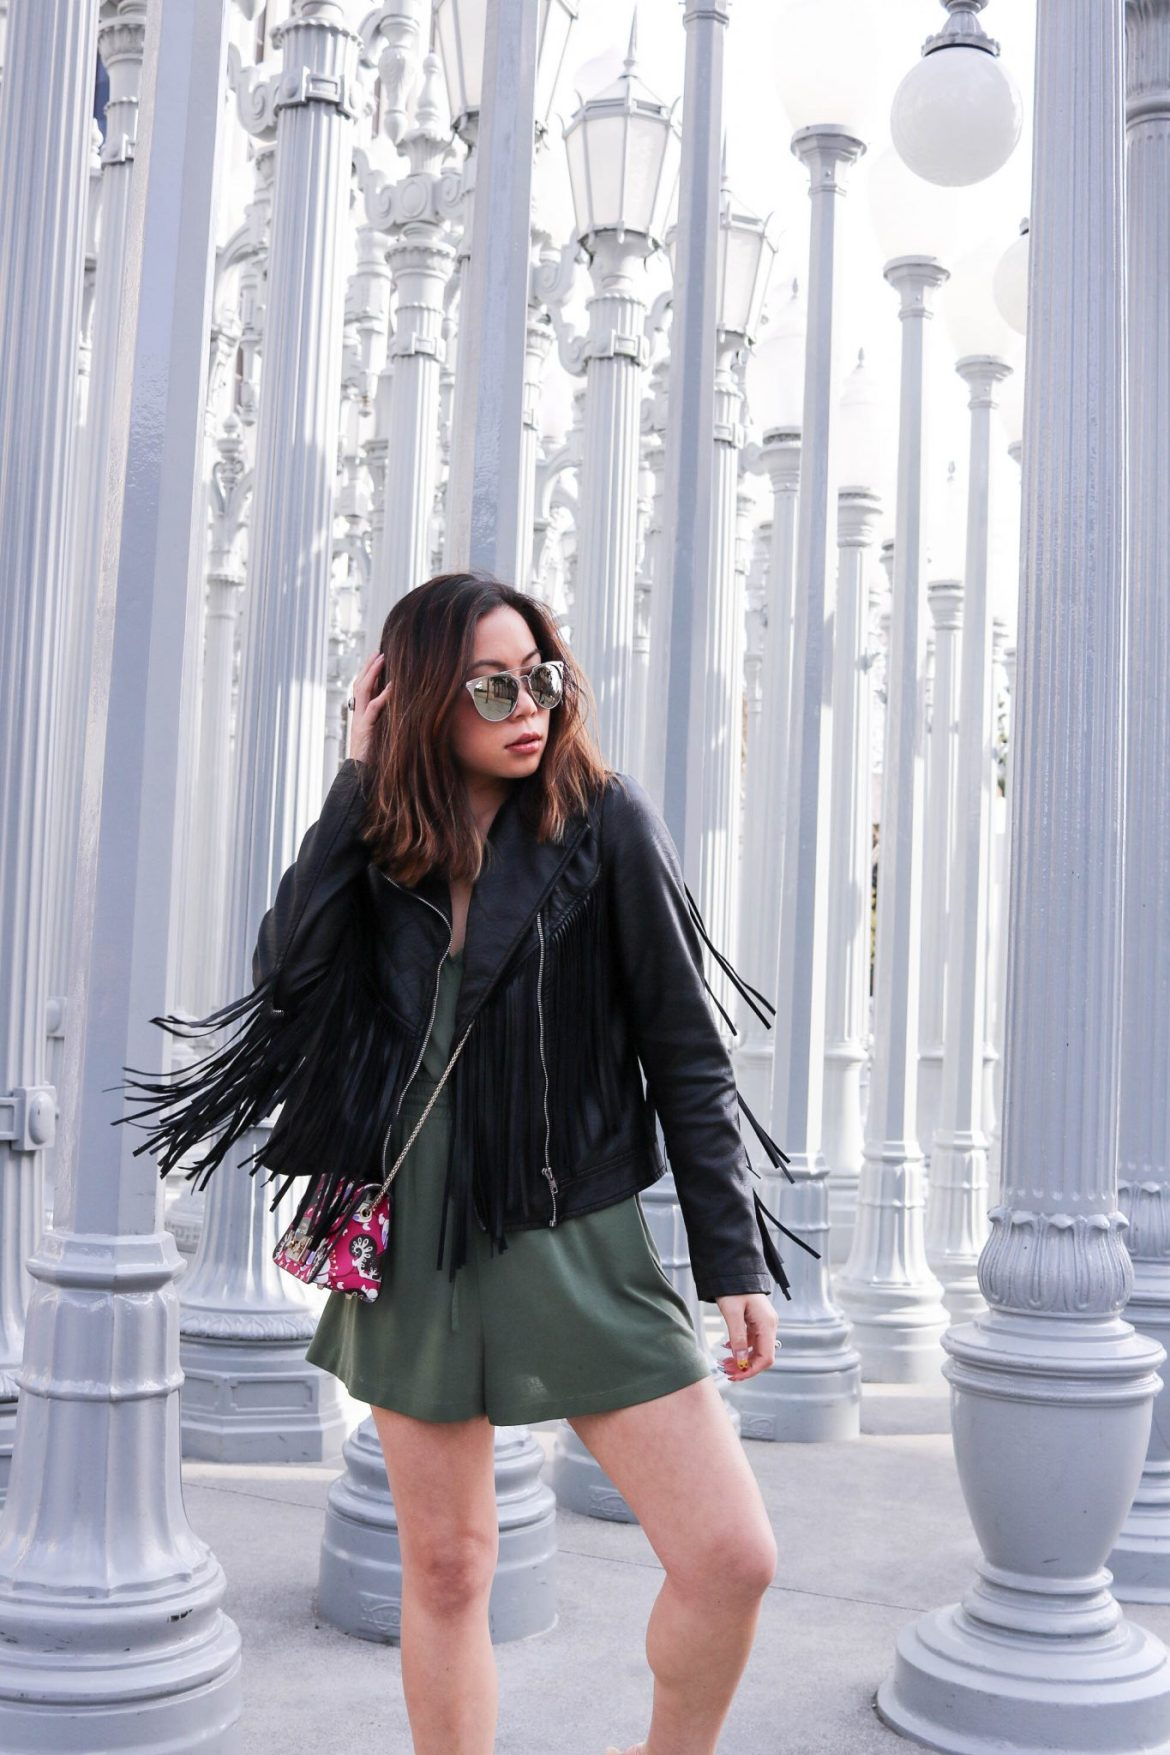 LACMA Los Angeles Kasey Ma TheStyleWright LA Travel